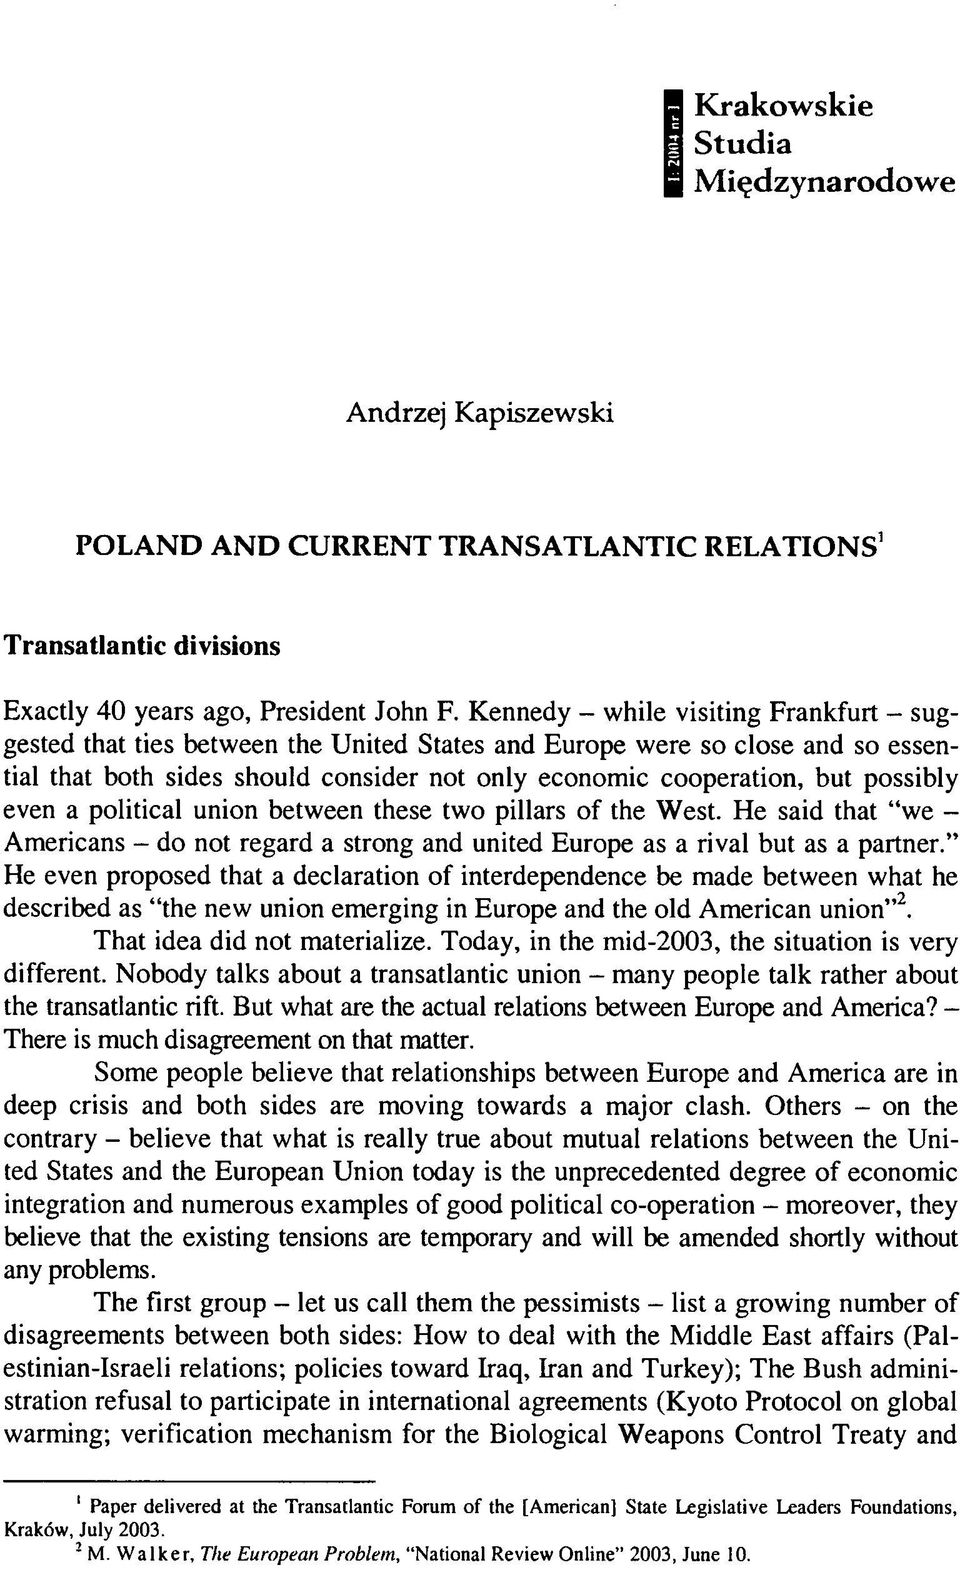 possibly even a political union between these two pillars of the West. He said that we - Americans - do not regard a strong and united Europę as a rival but as a partner.